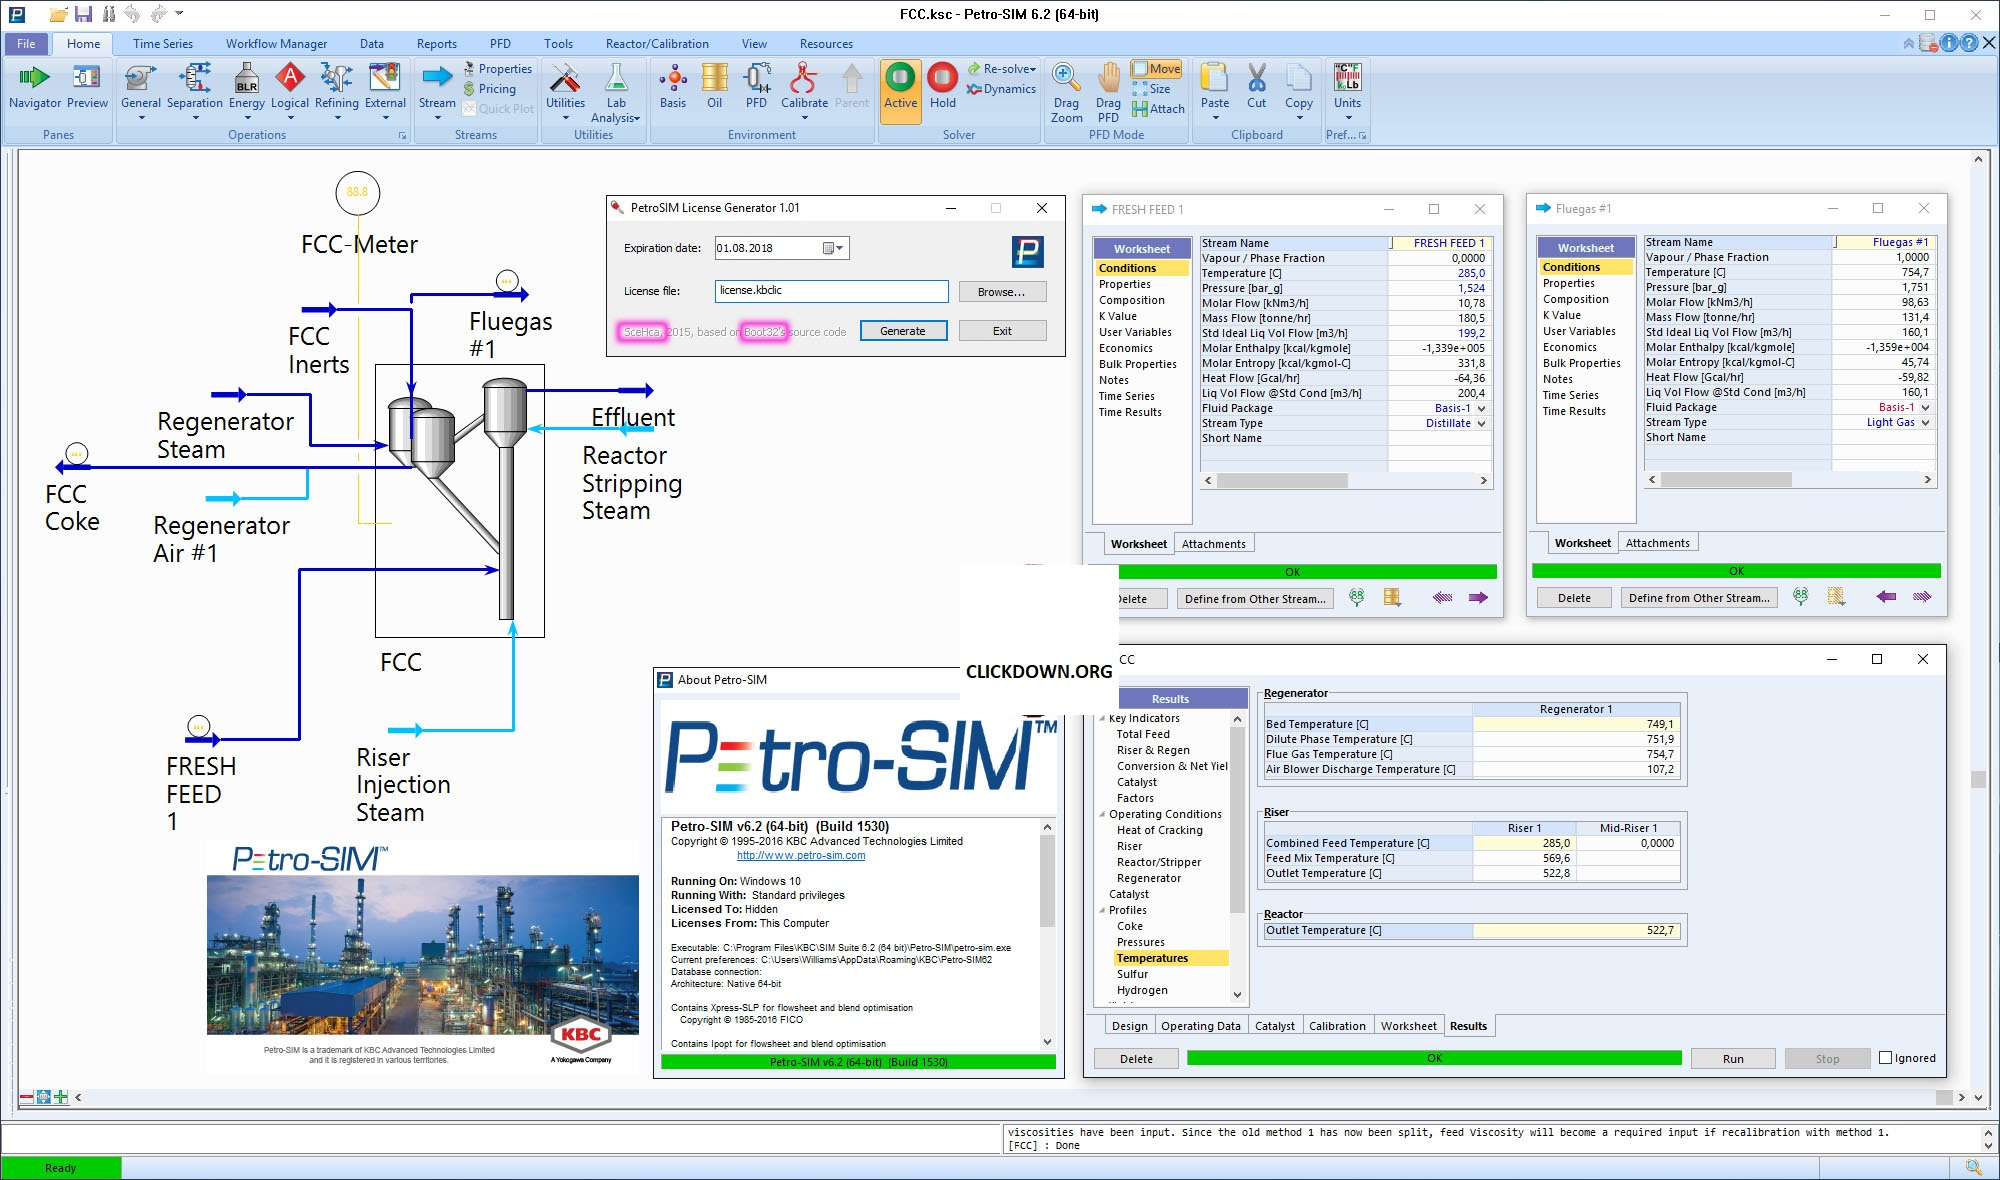 Working with KBC Petro-SIM and the SIM Reactor Suite 6.2 full license